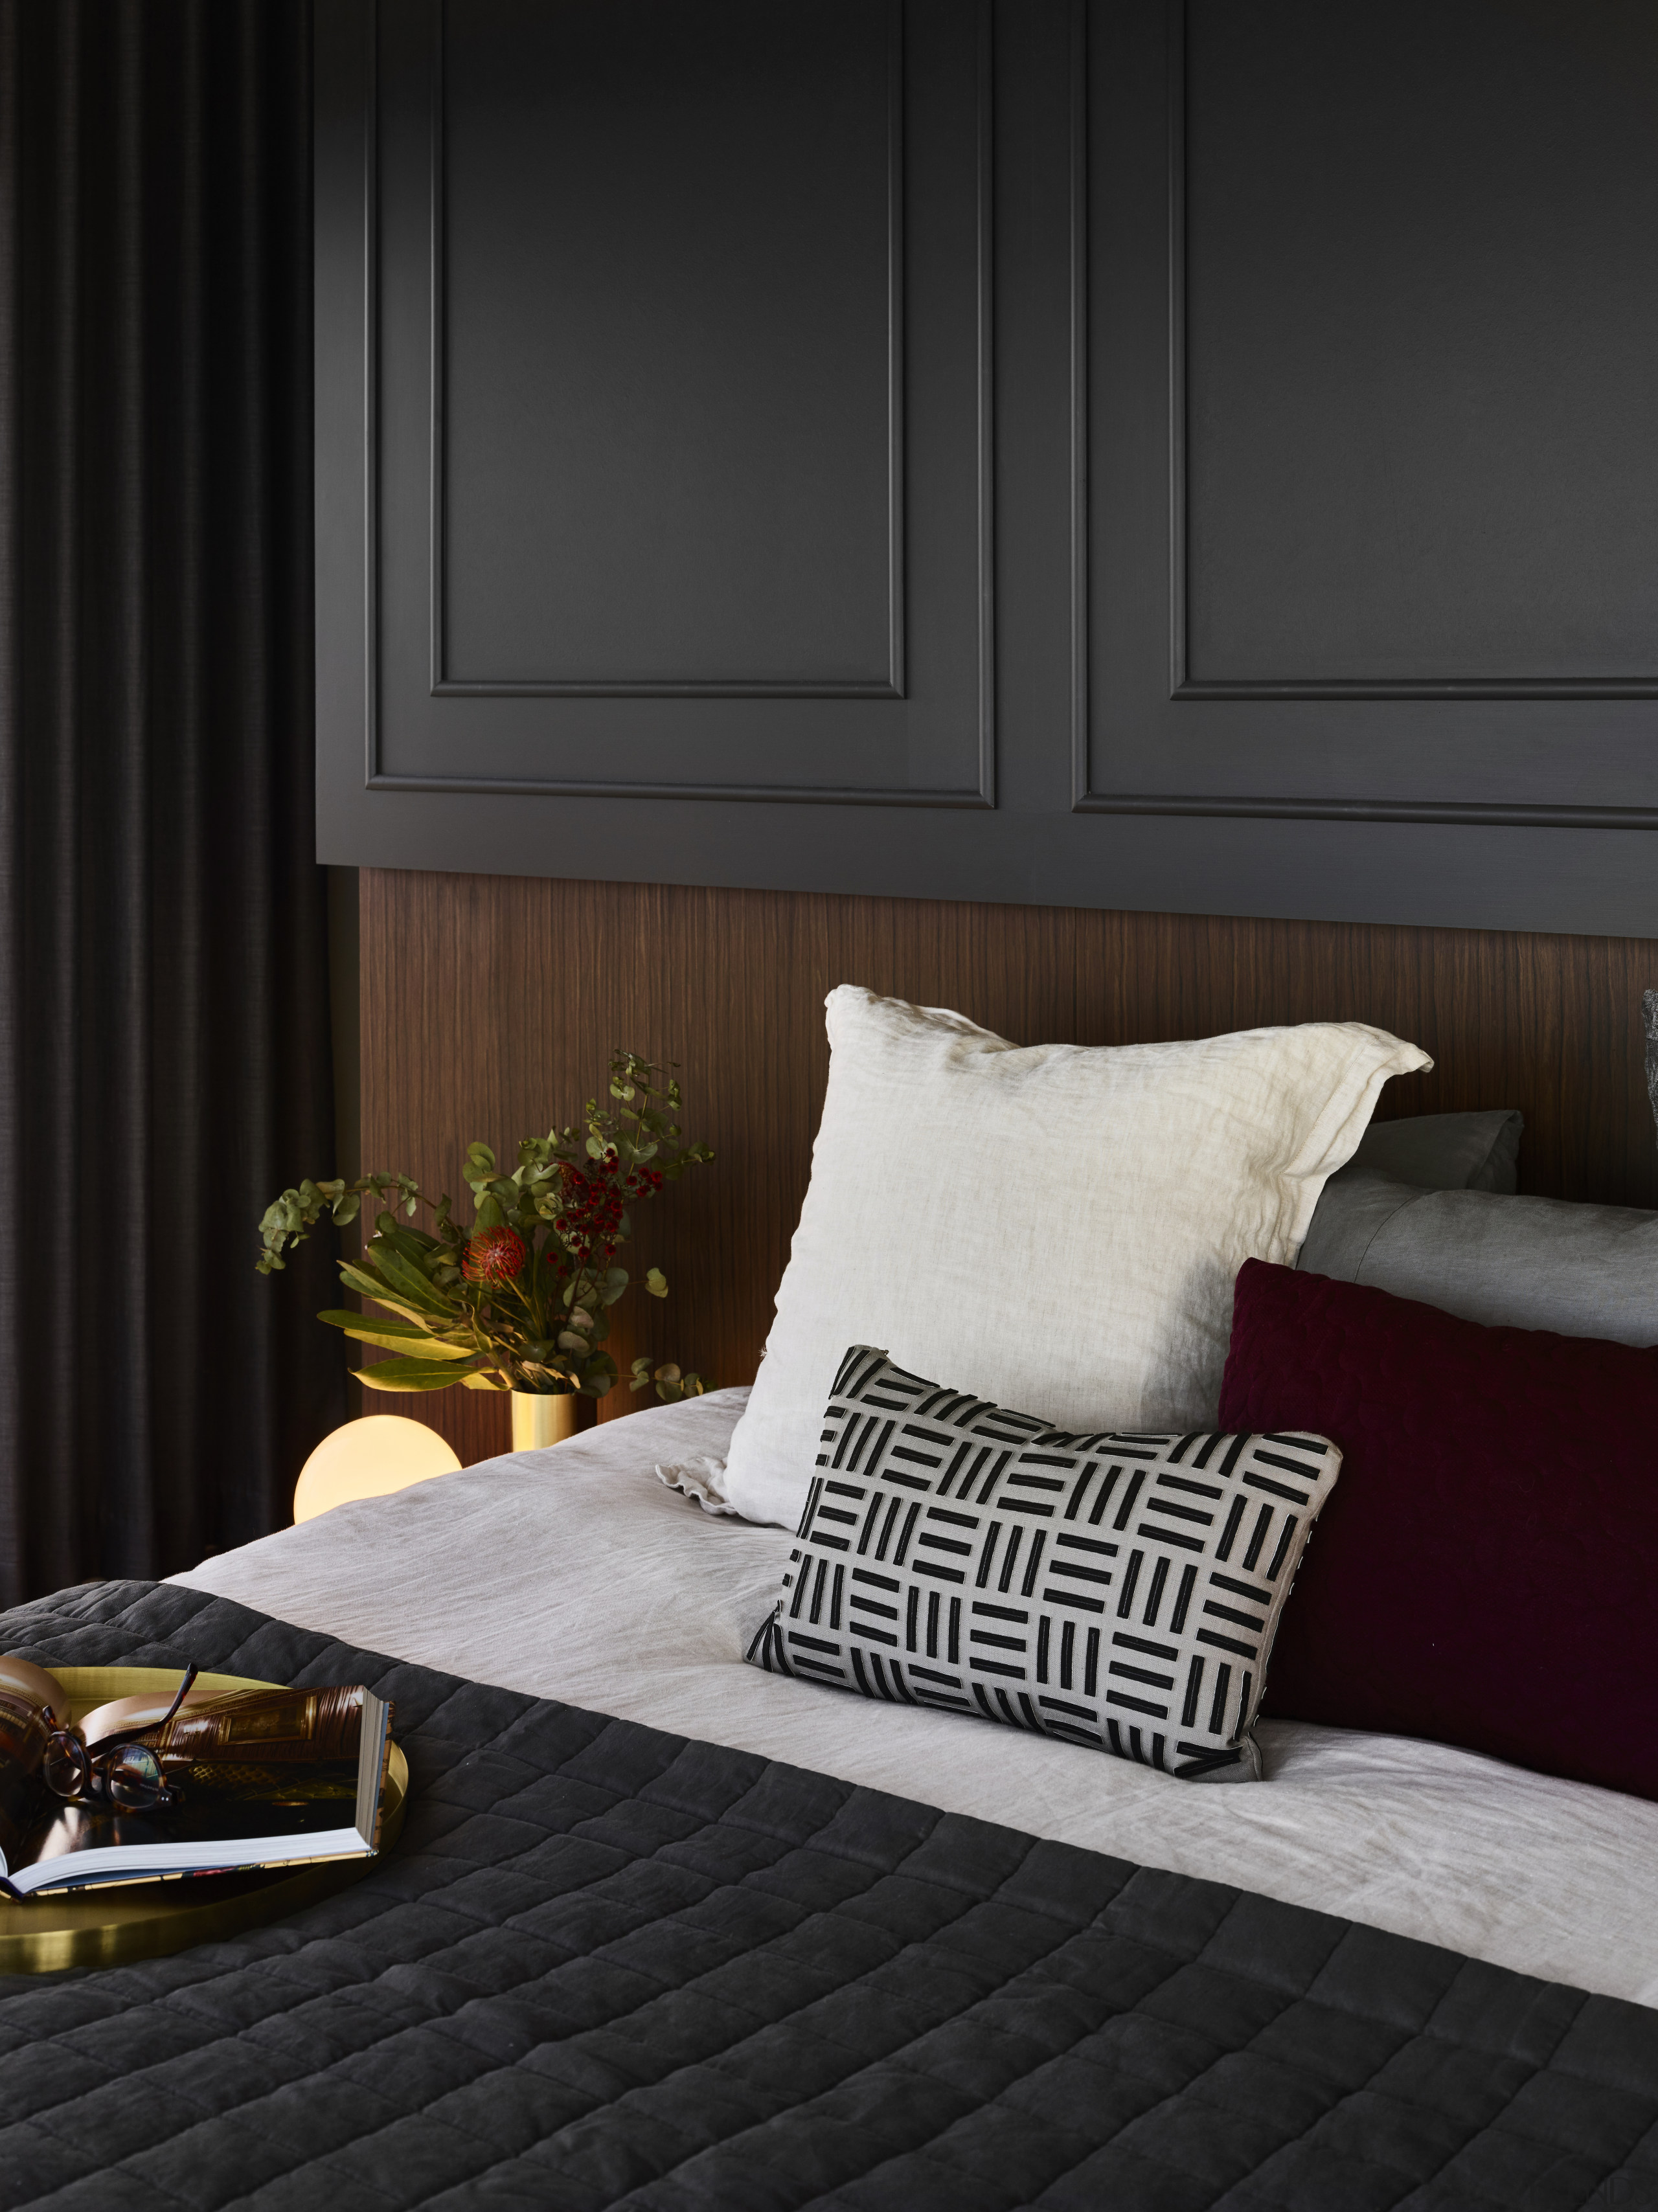 The sense of masculine opulence seen in the bed, bed frame, bed sheet, bedding, bedroom, couch, design, duvet cover, floor, fur, furniture, hardwood, house, interior design, linens, pillow, room, textile, wall, wood, black